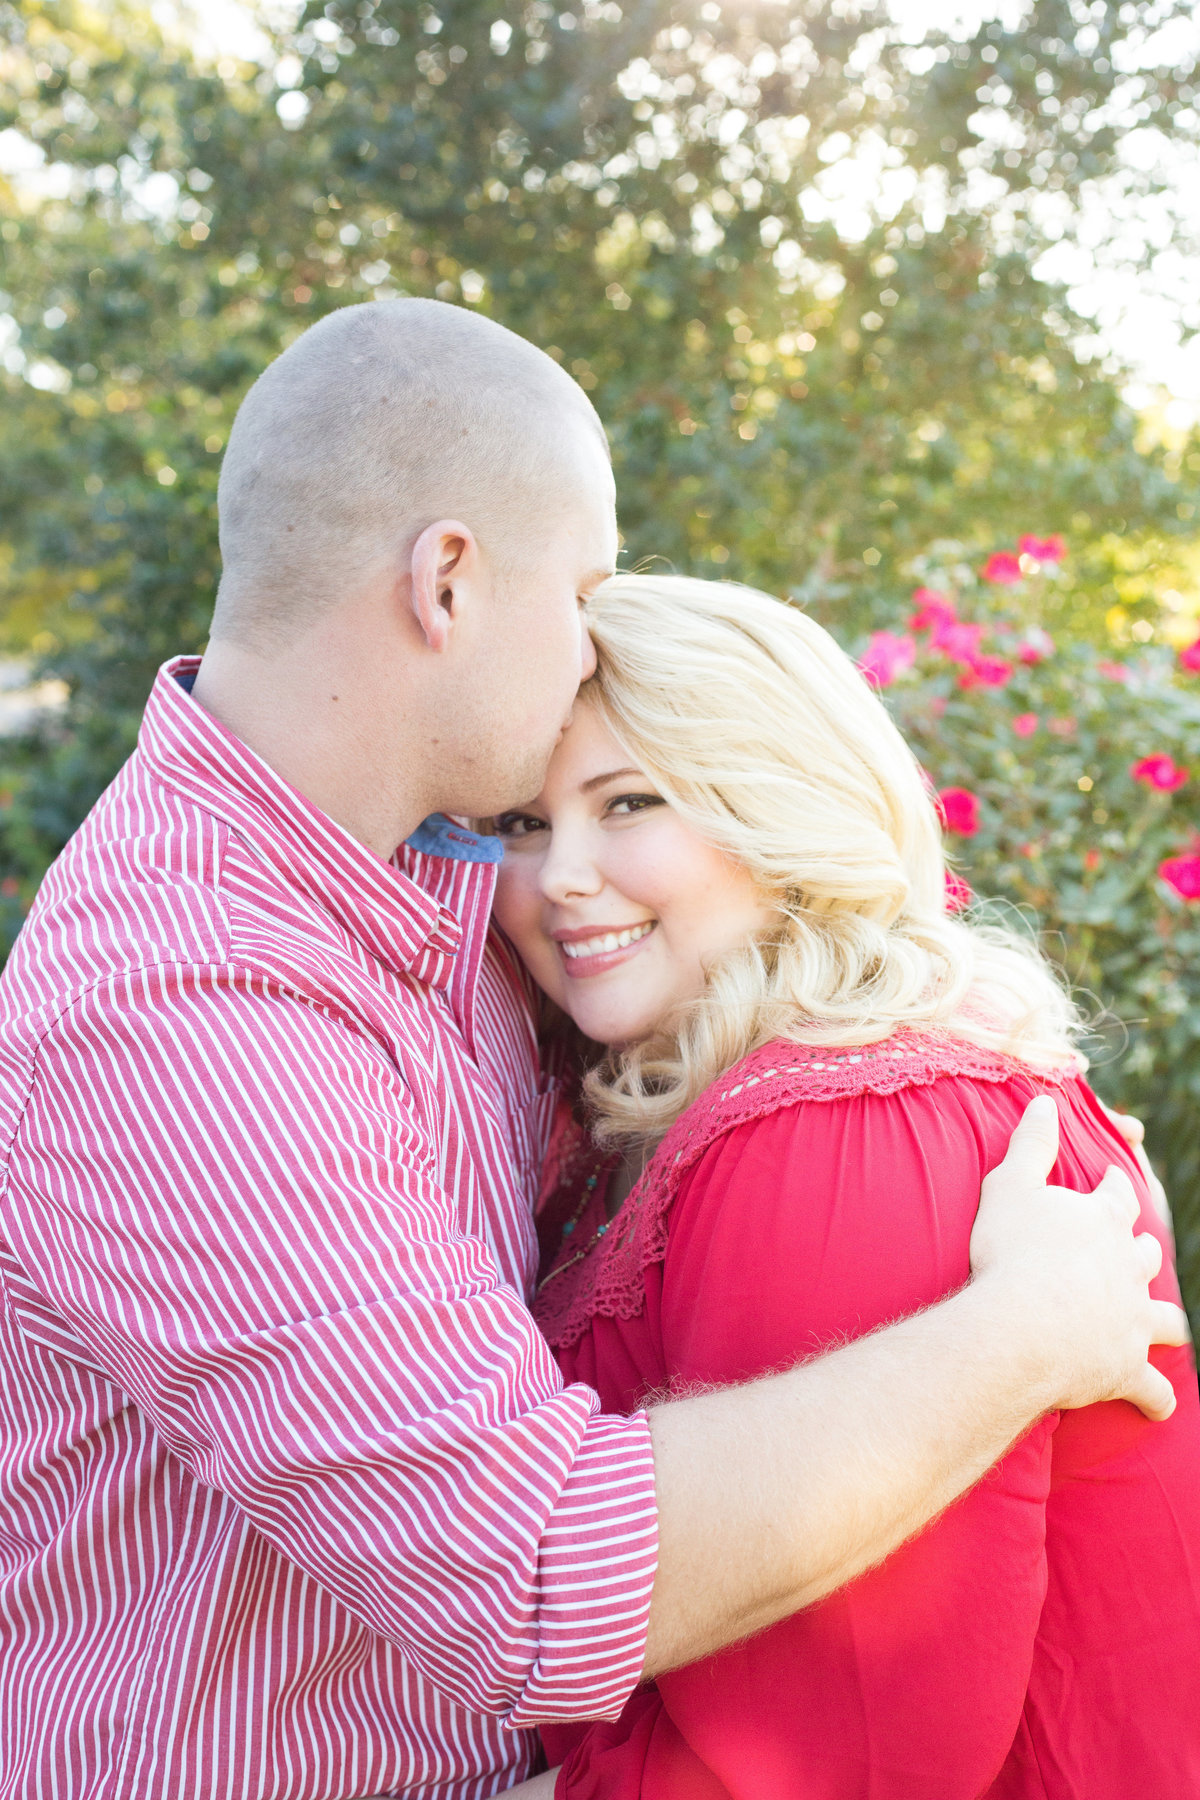 Madison and JP Engaged October 2015-Madison JP-0043 (1)